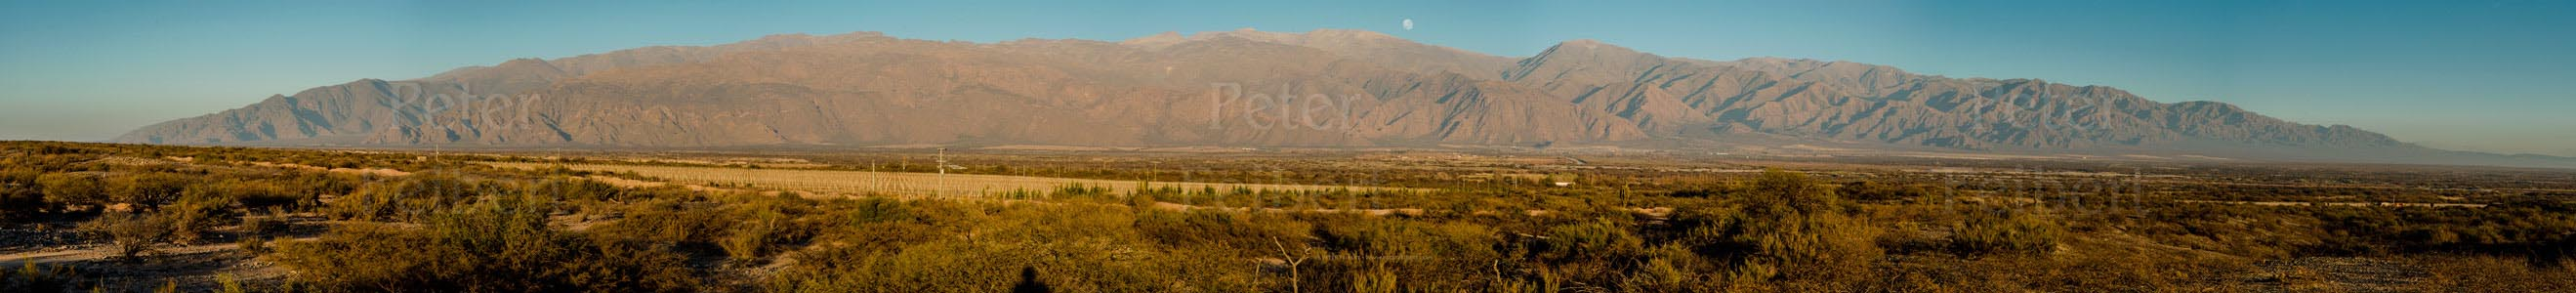 The setting moon, environs of the town of Cafayate, Calchaquí valley, Salta, Argentina.